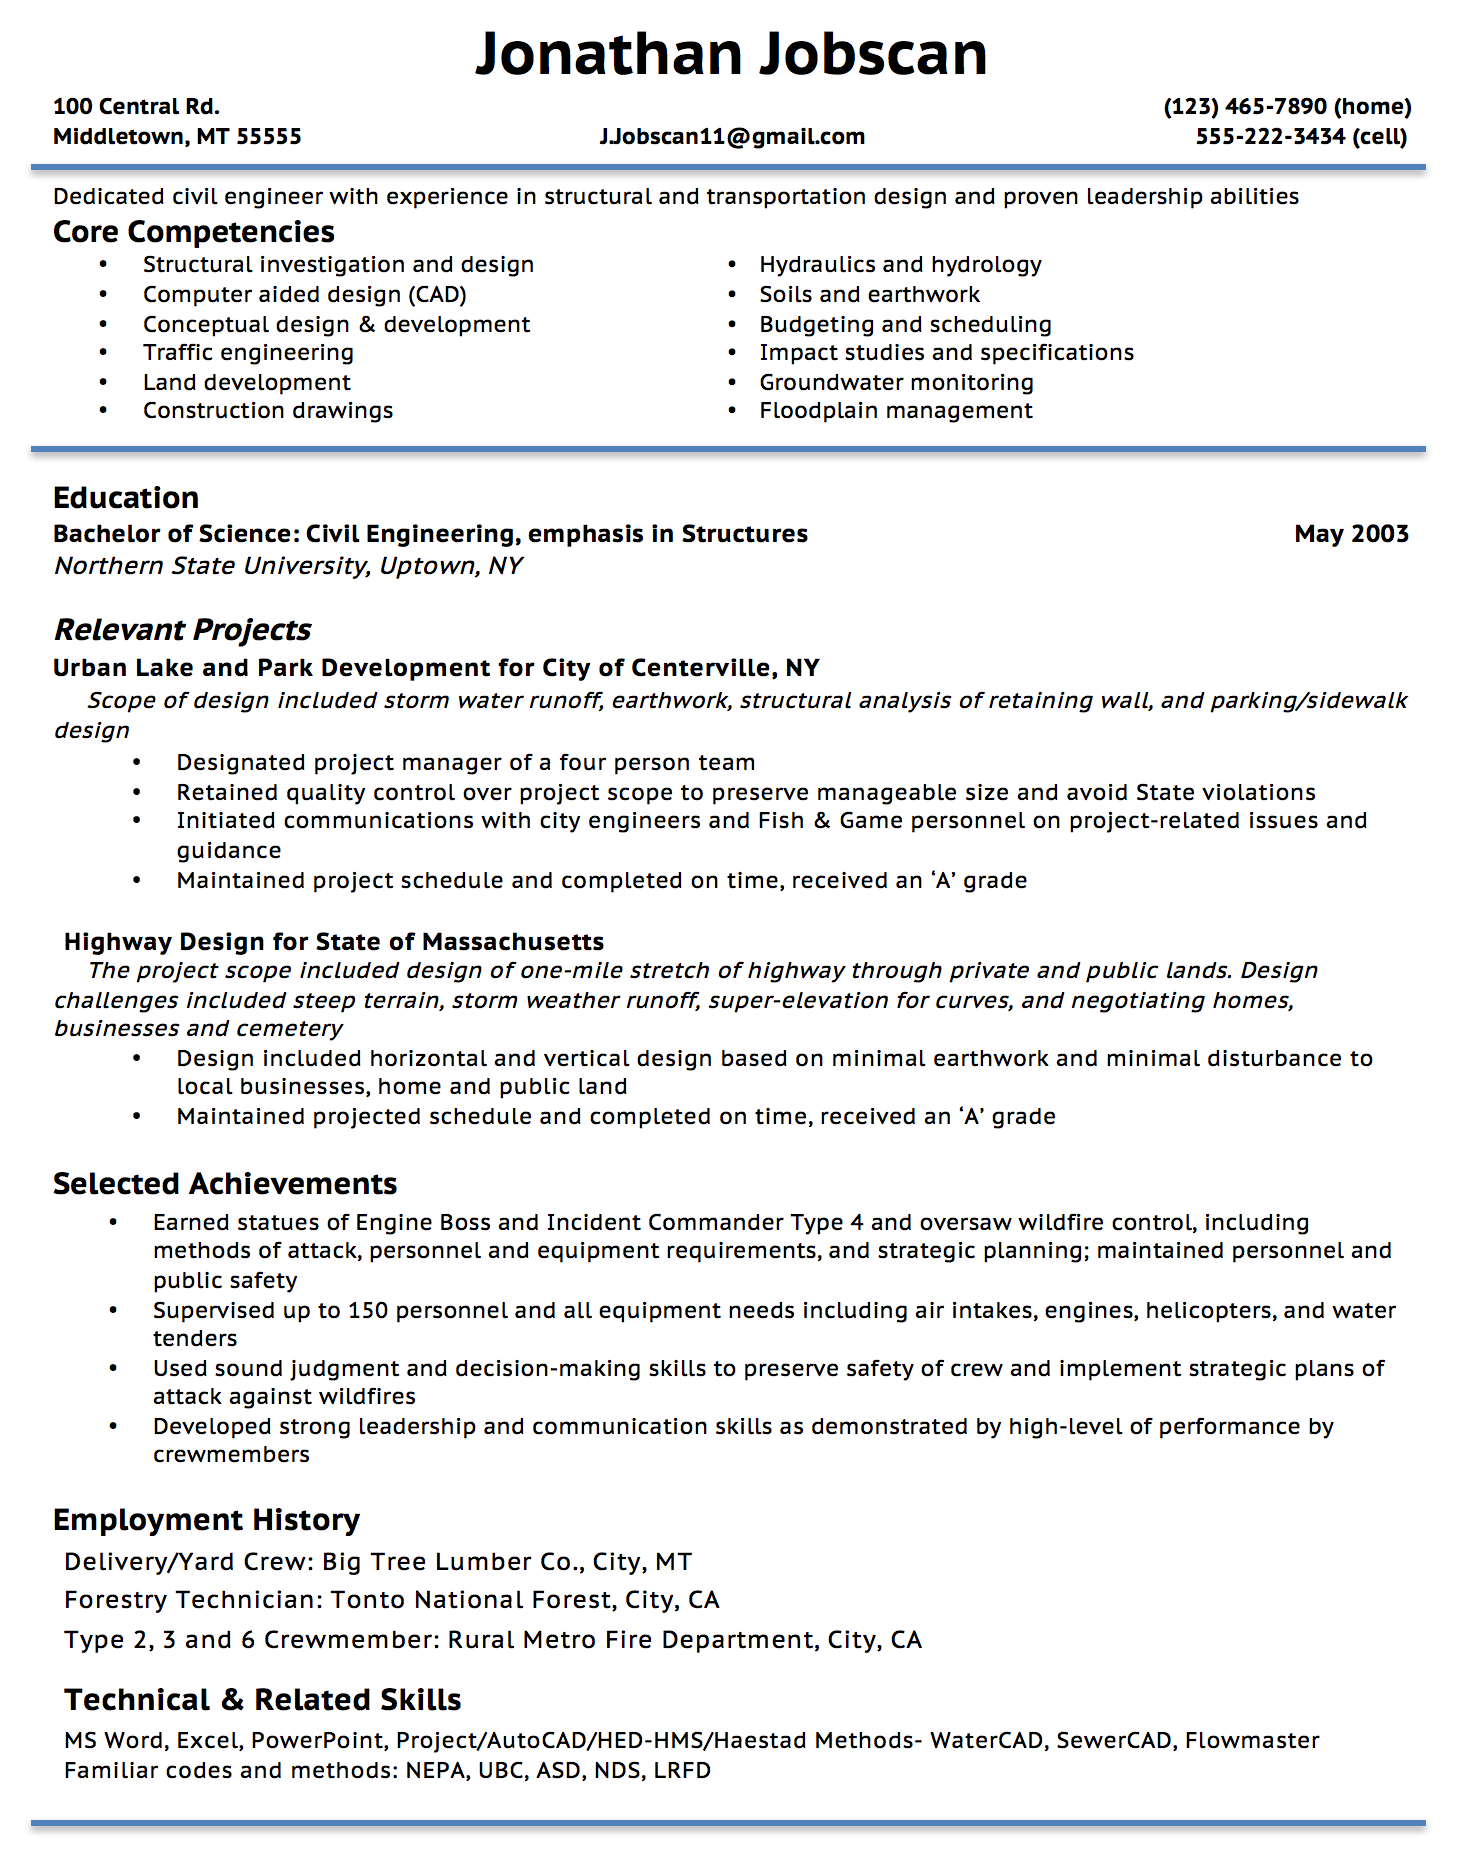 Opposenewapstandardsus  Prepossessing Resume Writing Guide  Jobscan With Exciting Example Of A Functional Resume Format With Attractive Resume Writing Books Also Occupational Therapy Resumes In Addition New Cna Resume And Sample Programmer Resume As Well As Outline Resume Additionally Resume Office Skills From Jobscanco With Opposenewapstandardsus  Exciting Resume Writing Guide  Jobscan With Attractive Example Of A Functional Resume Format And Prepossessing Resume Writing Books Also Occupational Therapy Resumes In Addition New Cna Resume From Jobscanco